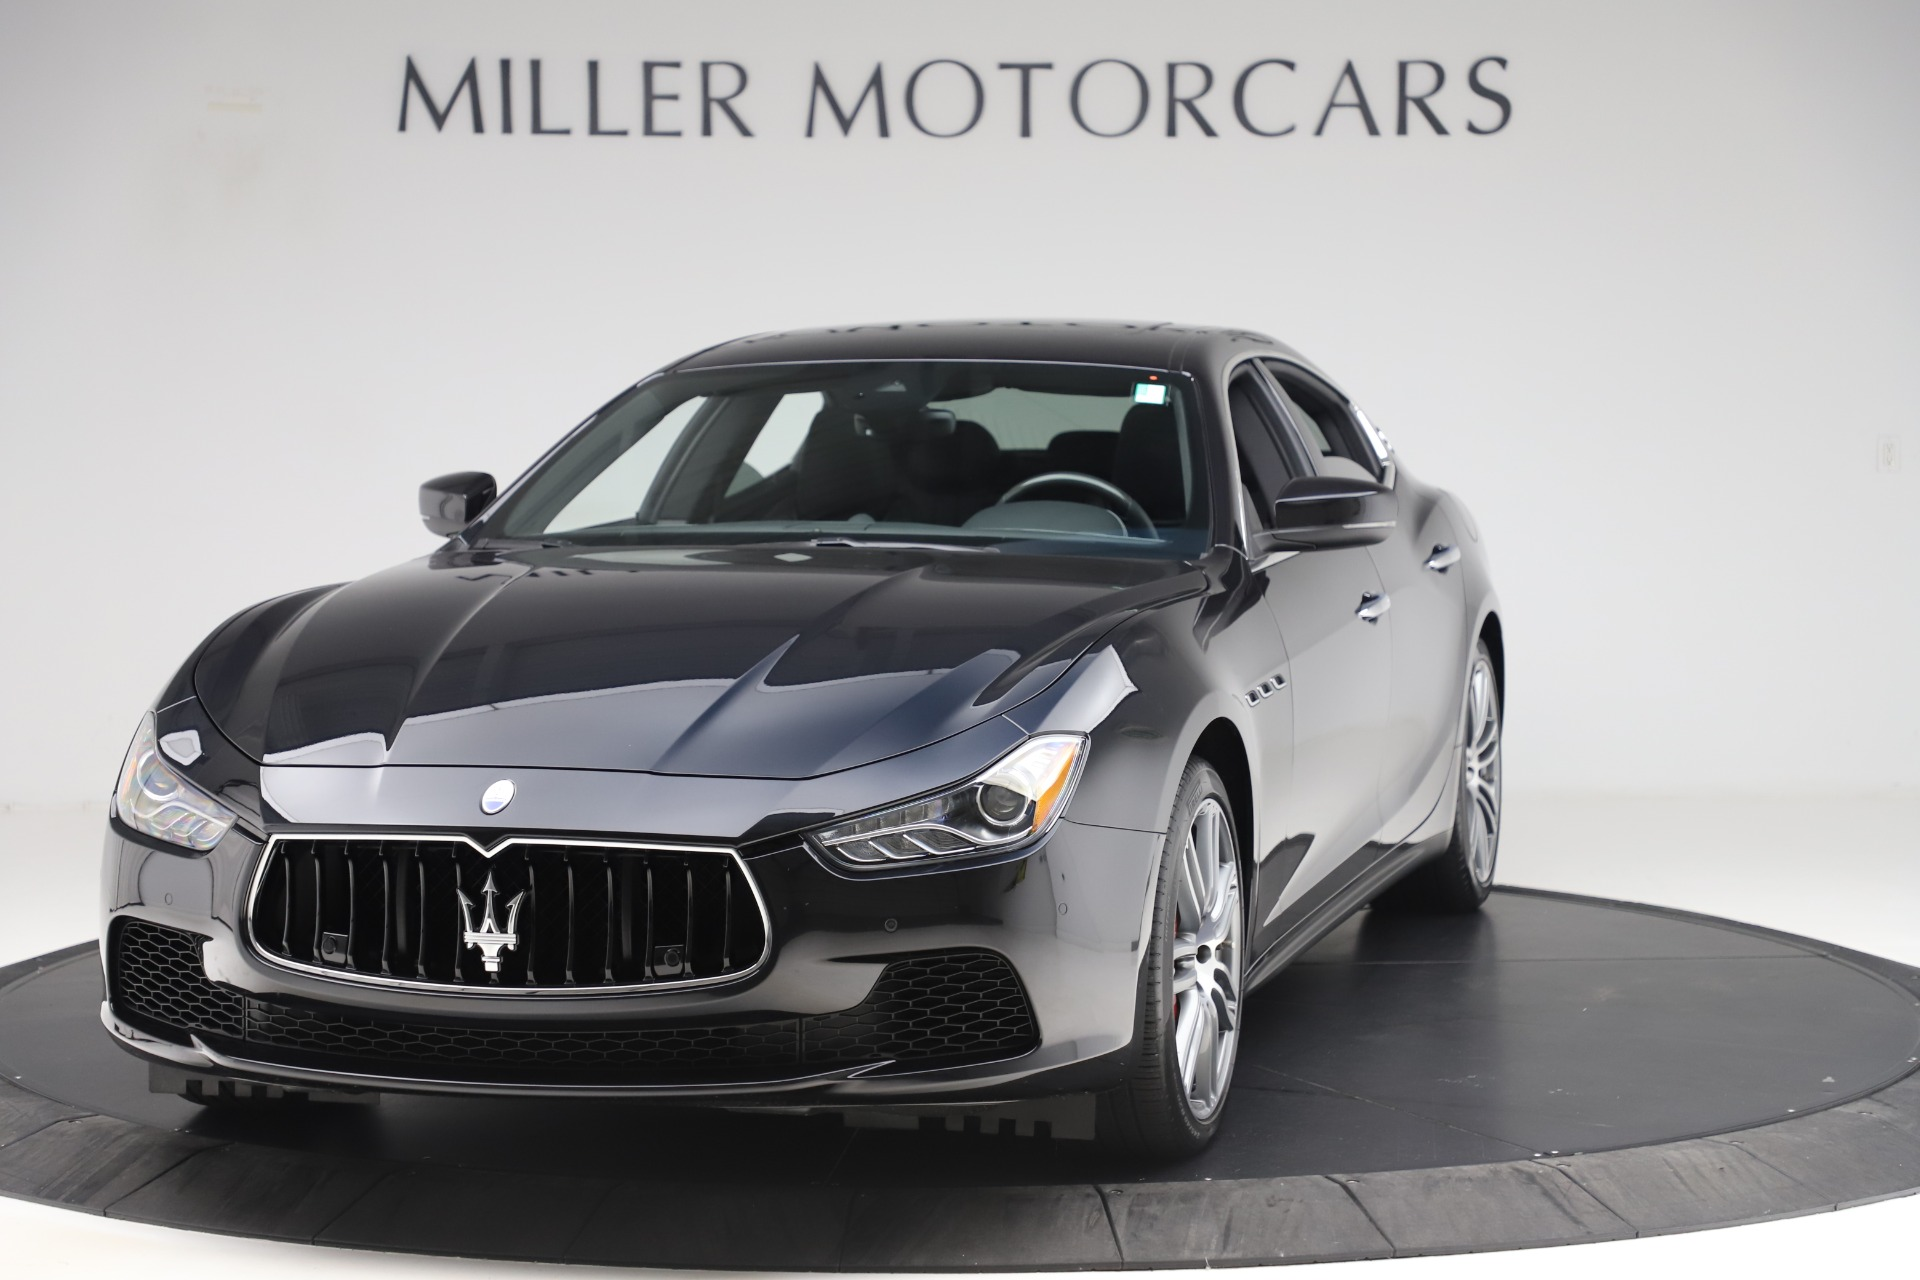 Used 2017 Maserati Ghibli S Q4 for sale Sold at Bugatti of Greenwich in Greenwich CT 06830 1